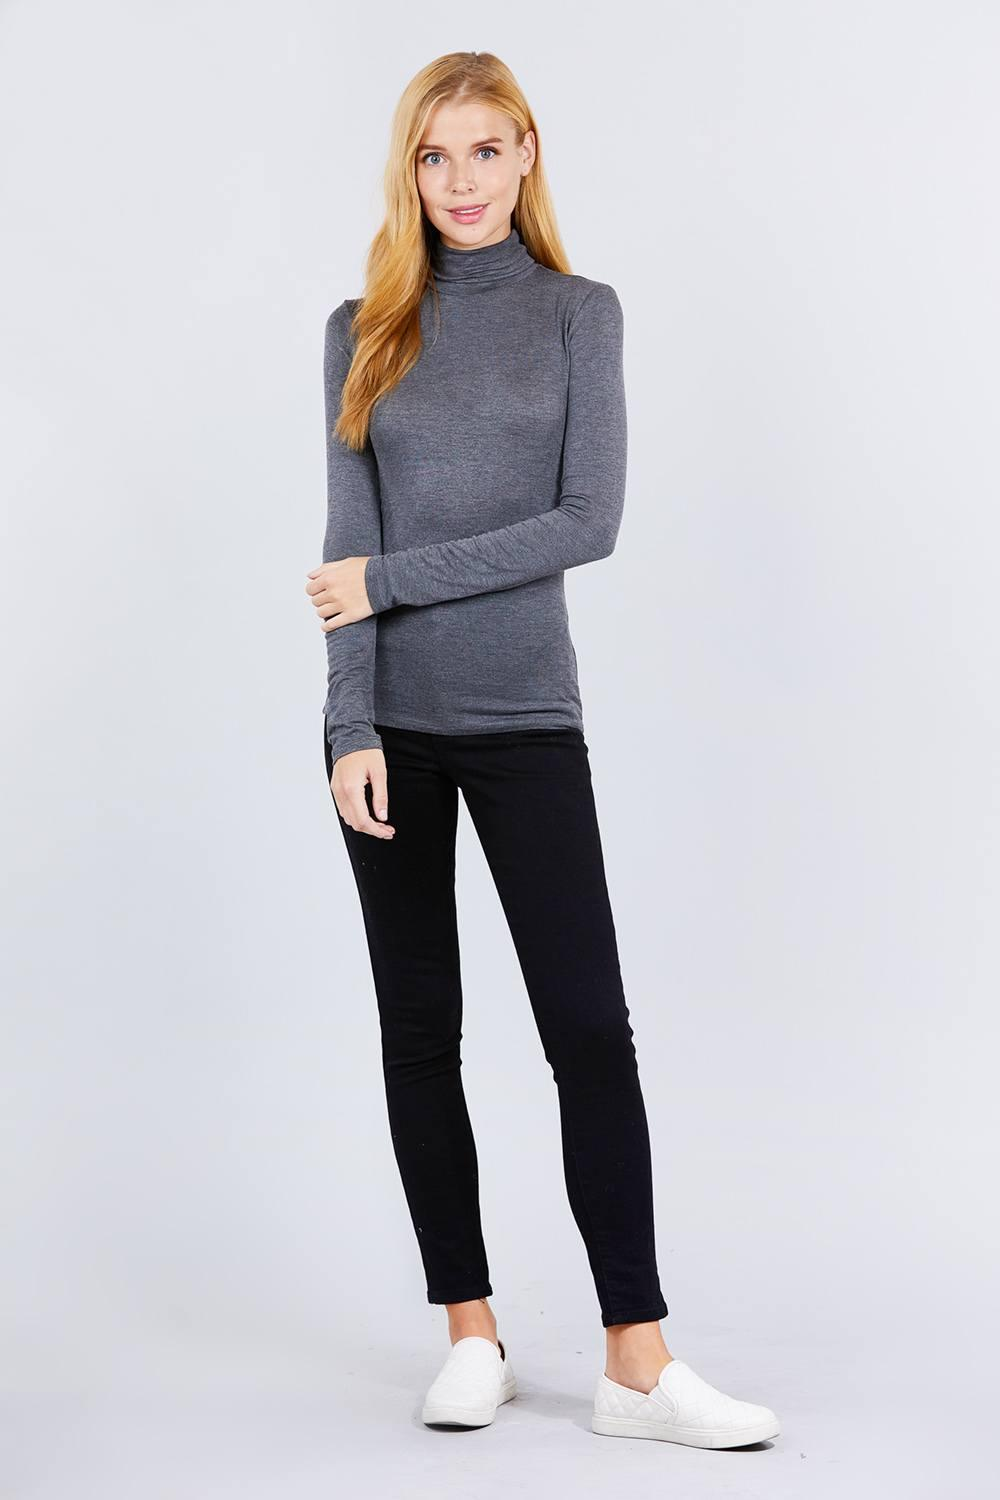 Turtle Neck Rayon Jersey Top - Naughty Smile Fashion